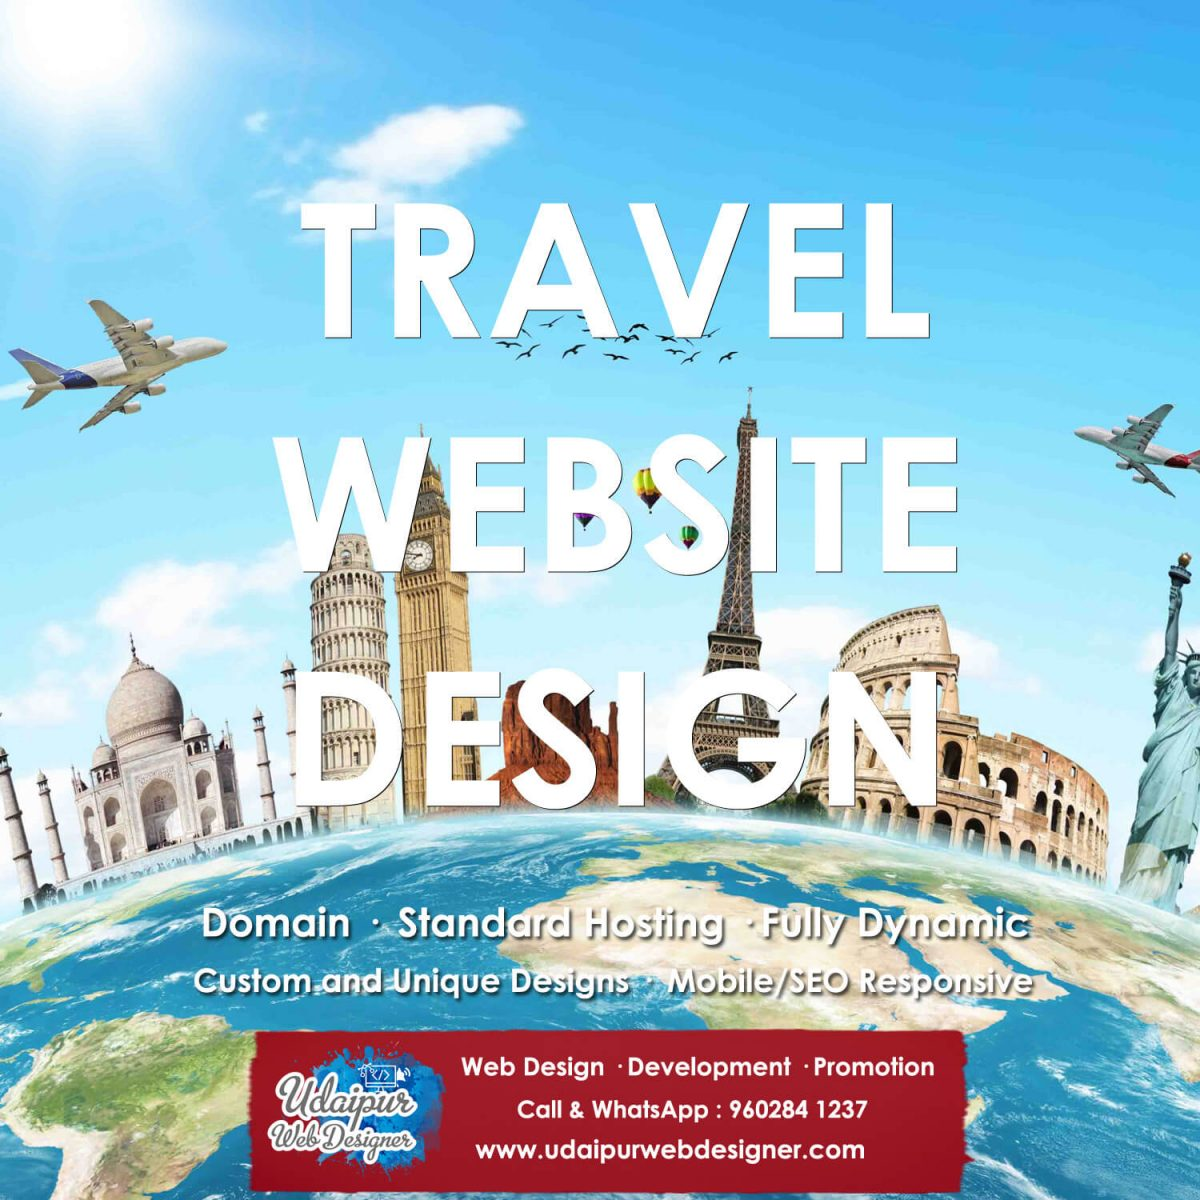 Tour Travel Website Design India